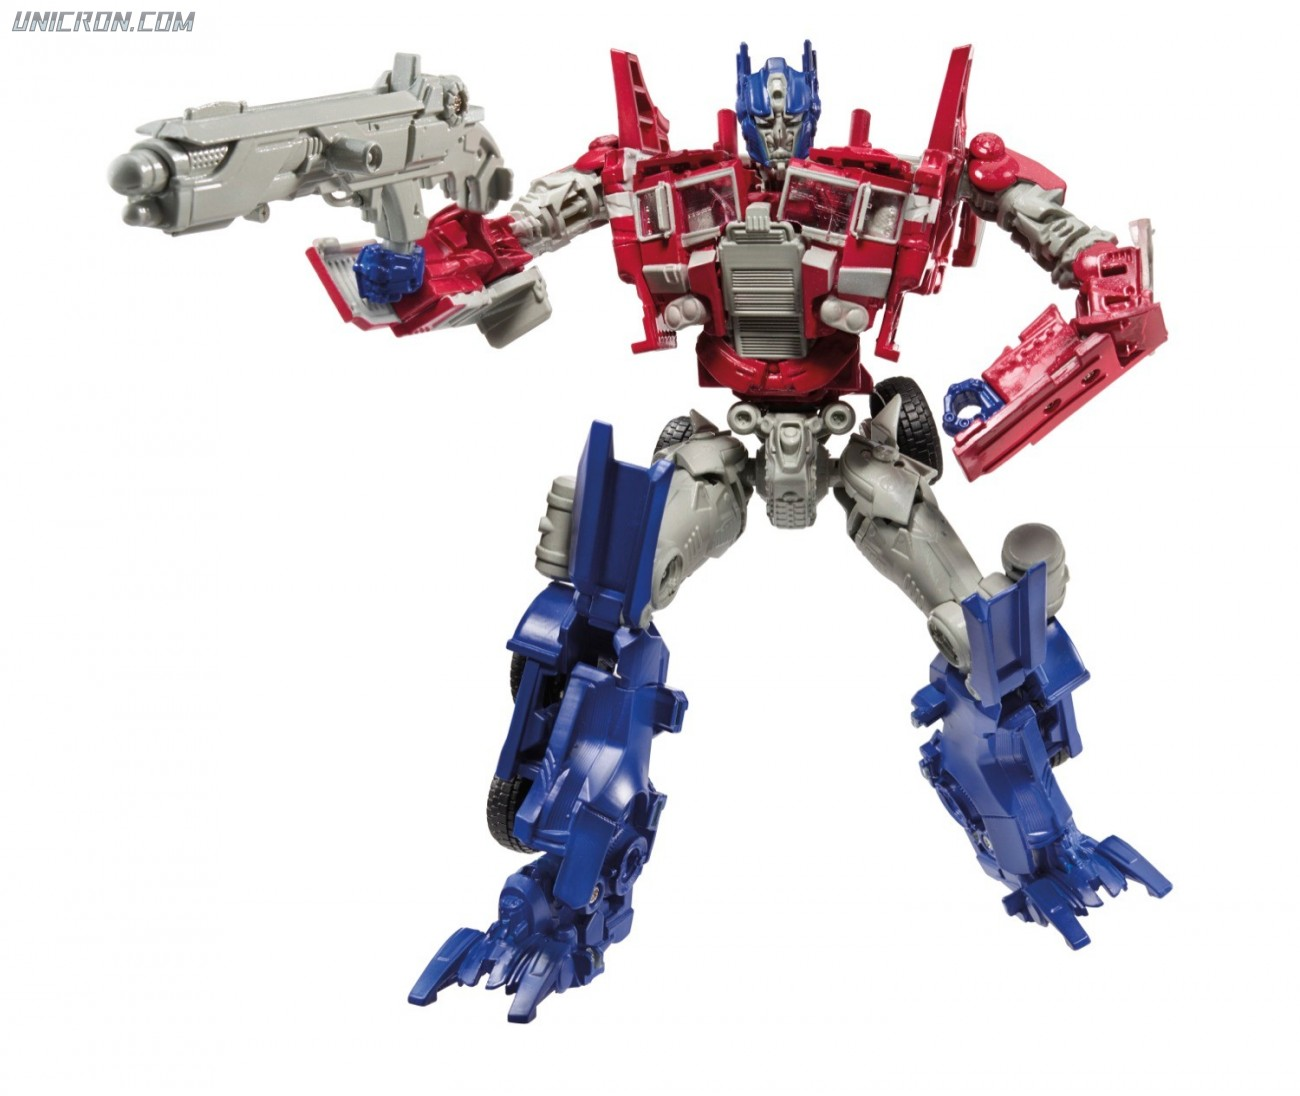 Transformers 4 Age of Extinction Evasion Mode Optimus Prime toy